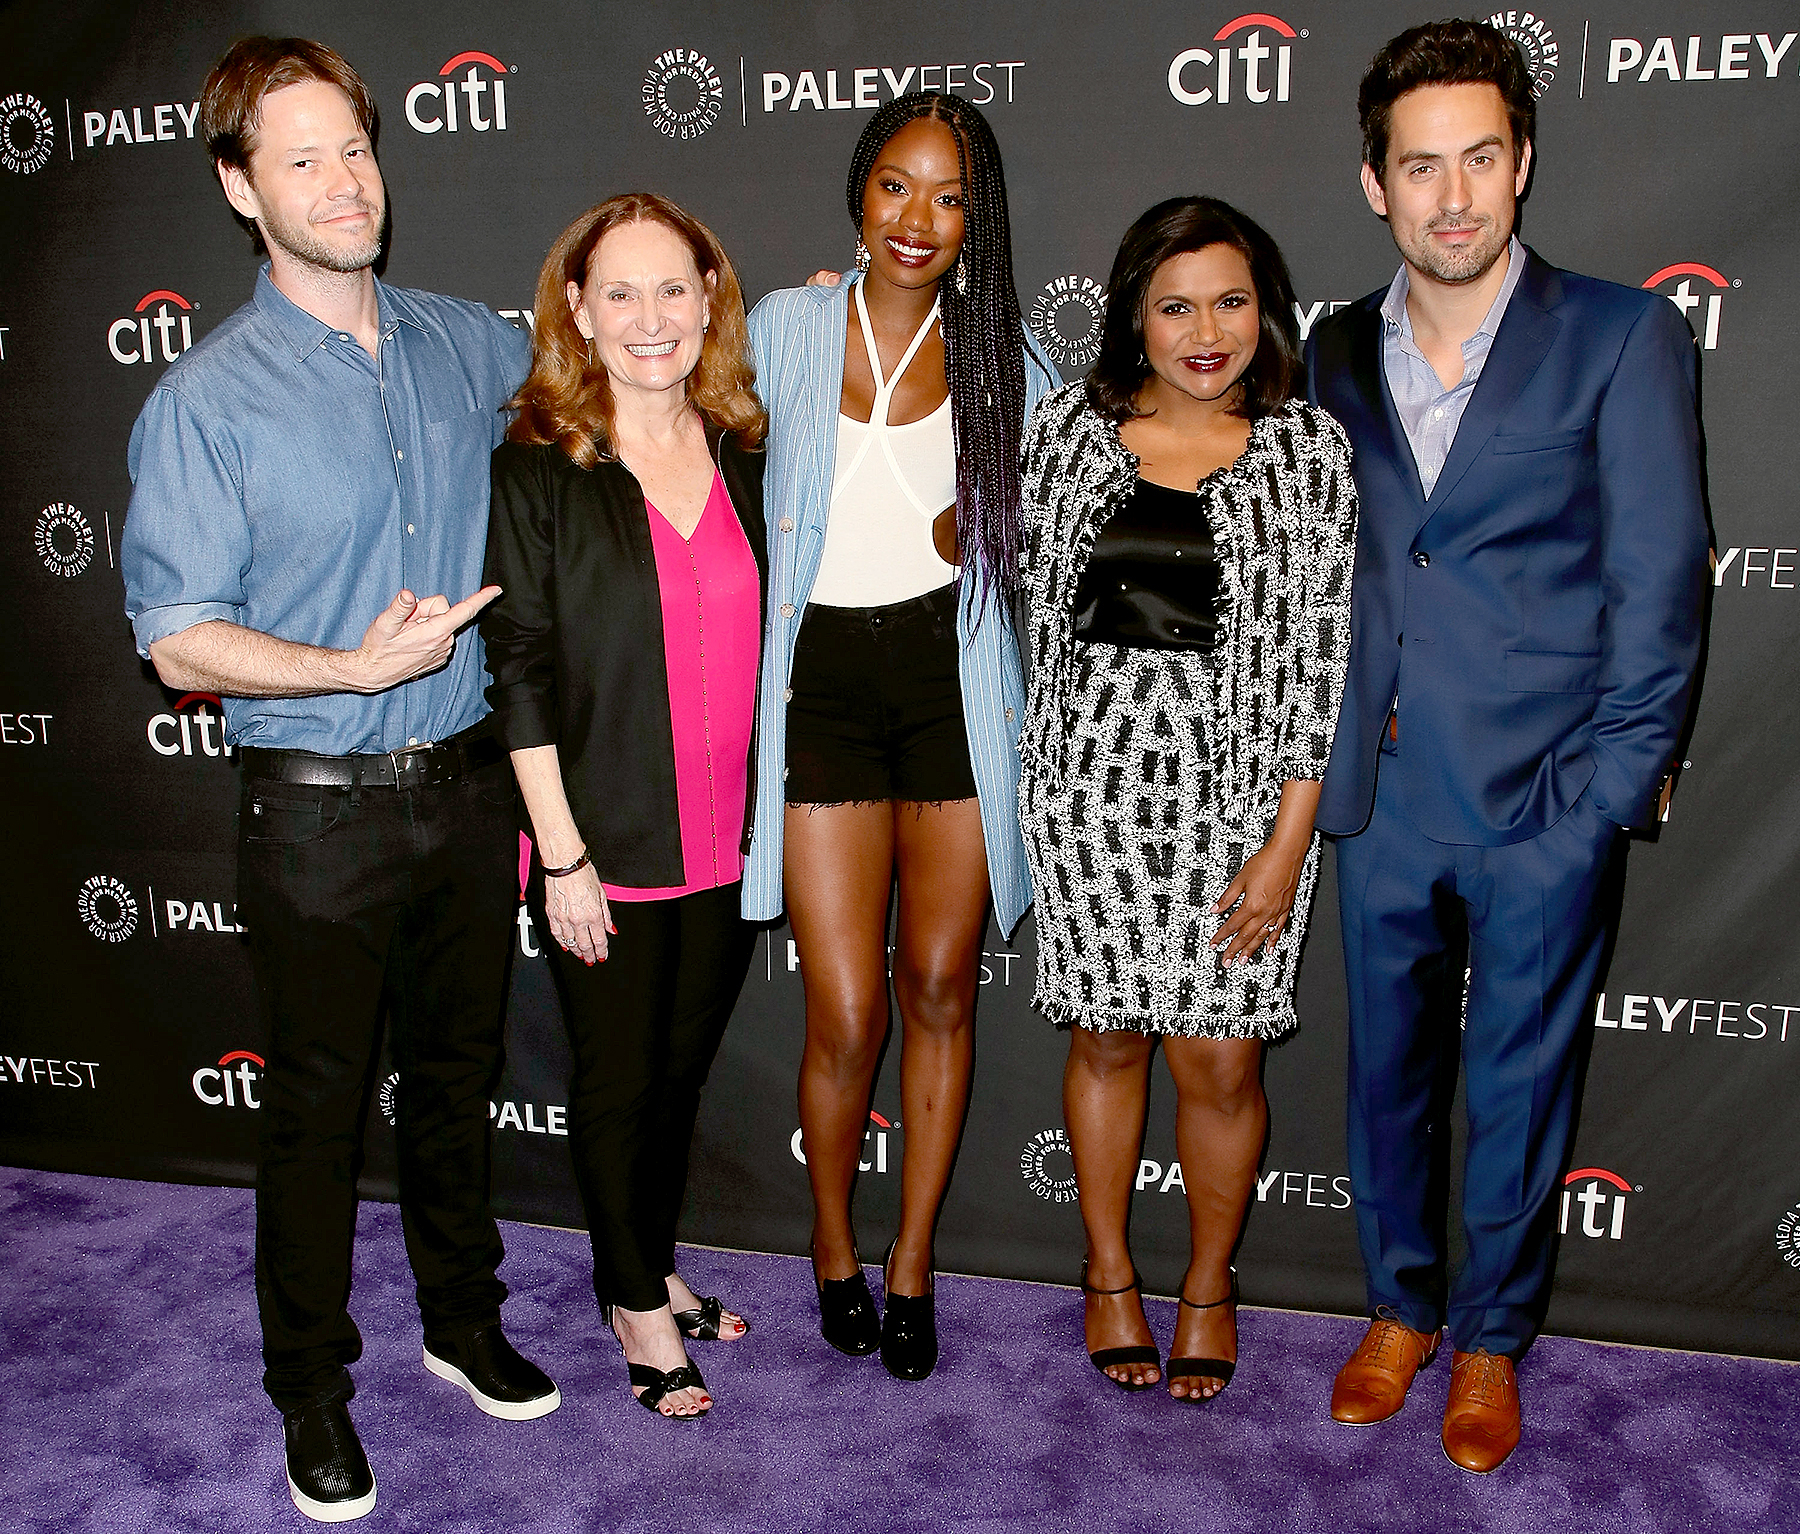 Ike Barinholtz. Beth Grant, Xosha Roquemore, Mindy Kaling and Ed Weeks attend The Paley Center for Media's 11th Annual PaleyFest fall TV previews Los Angeles for Hulu's The Mindy Project at The Paley Center for Media on September 8, 2017 in Beverly Hills, California.